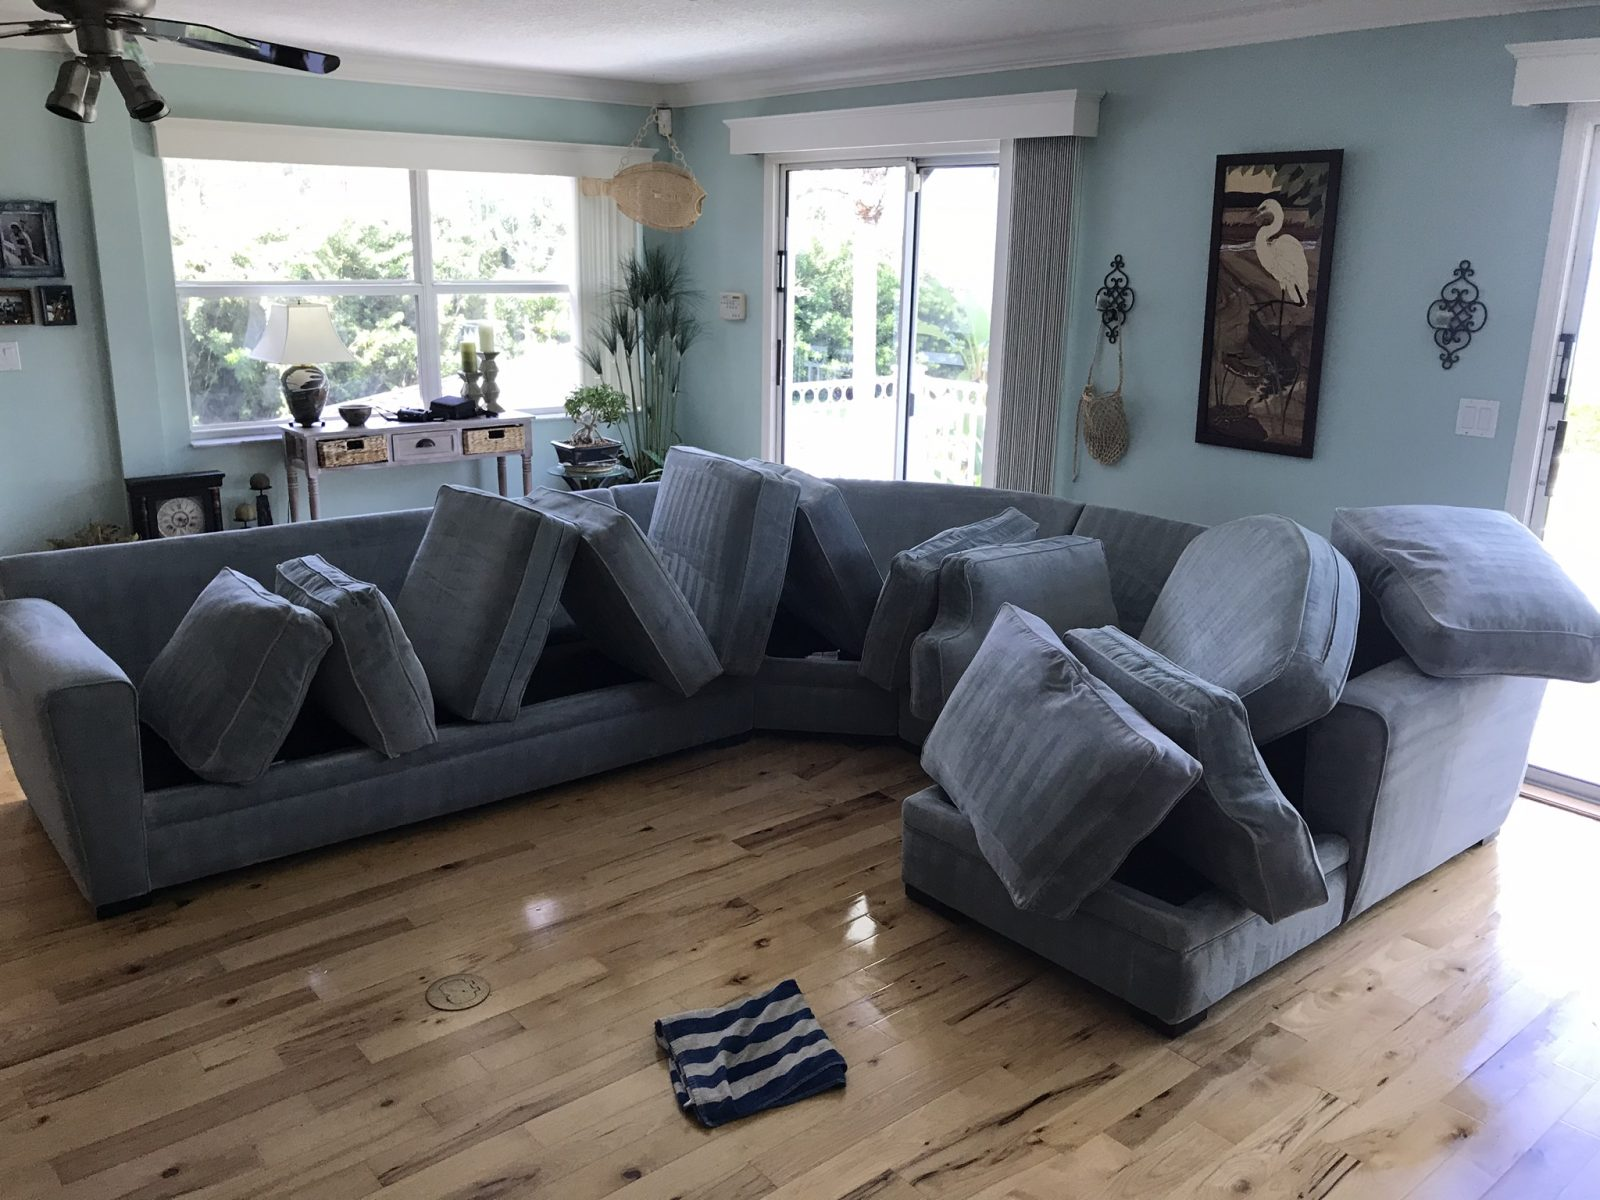 Professional Upholstery Cleaning Trinity Florida by Howards Cleaning Service